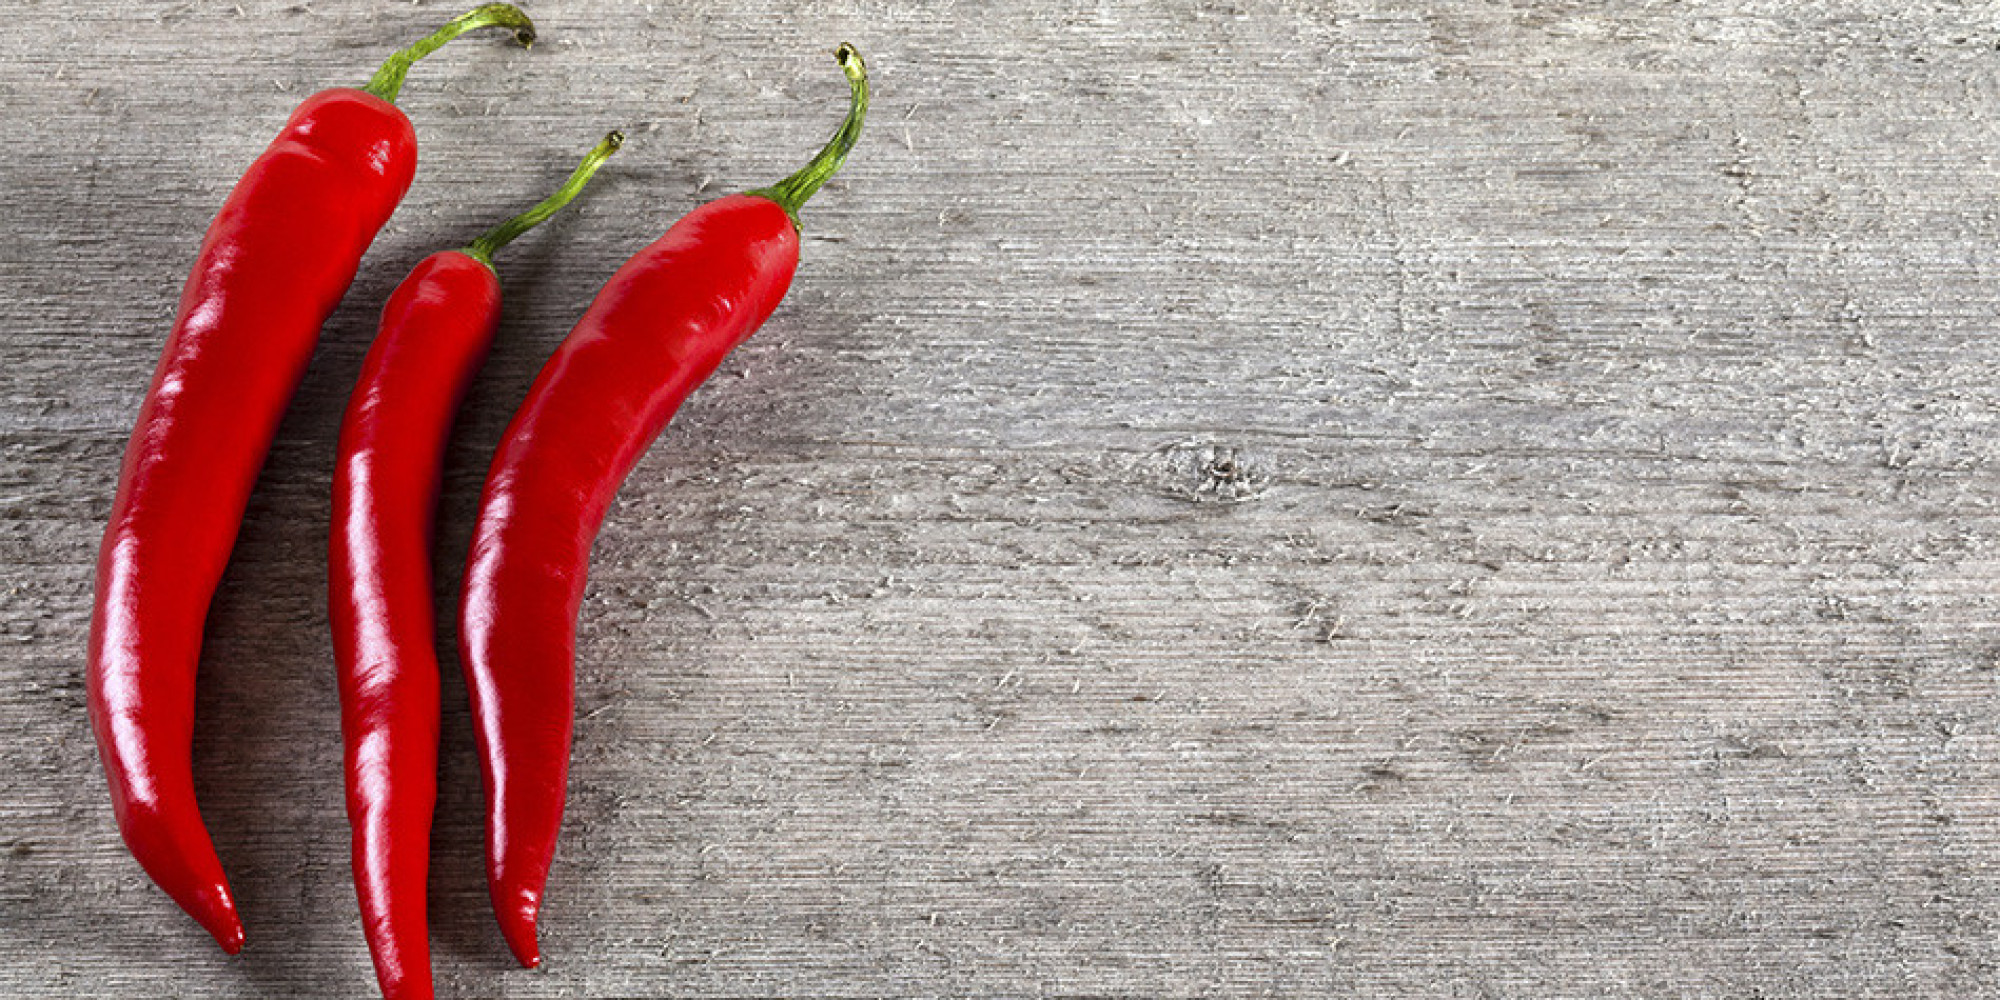 The Health Benefits Of Spicy Foods